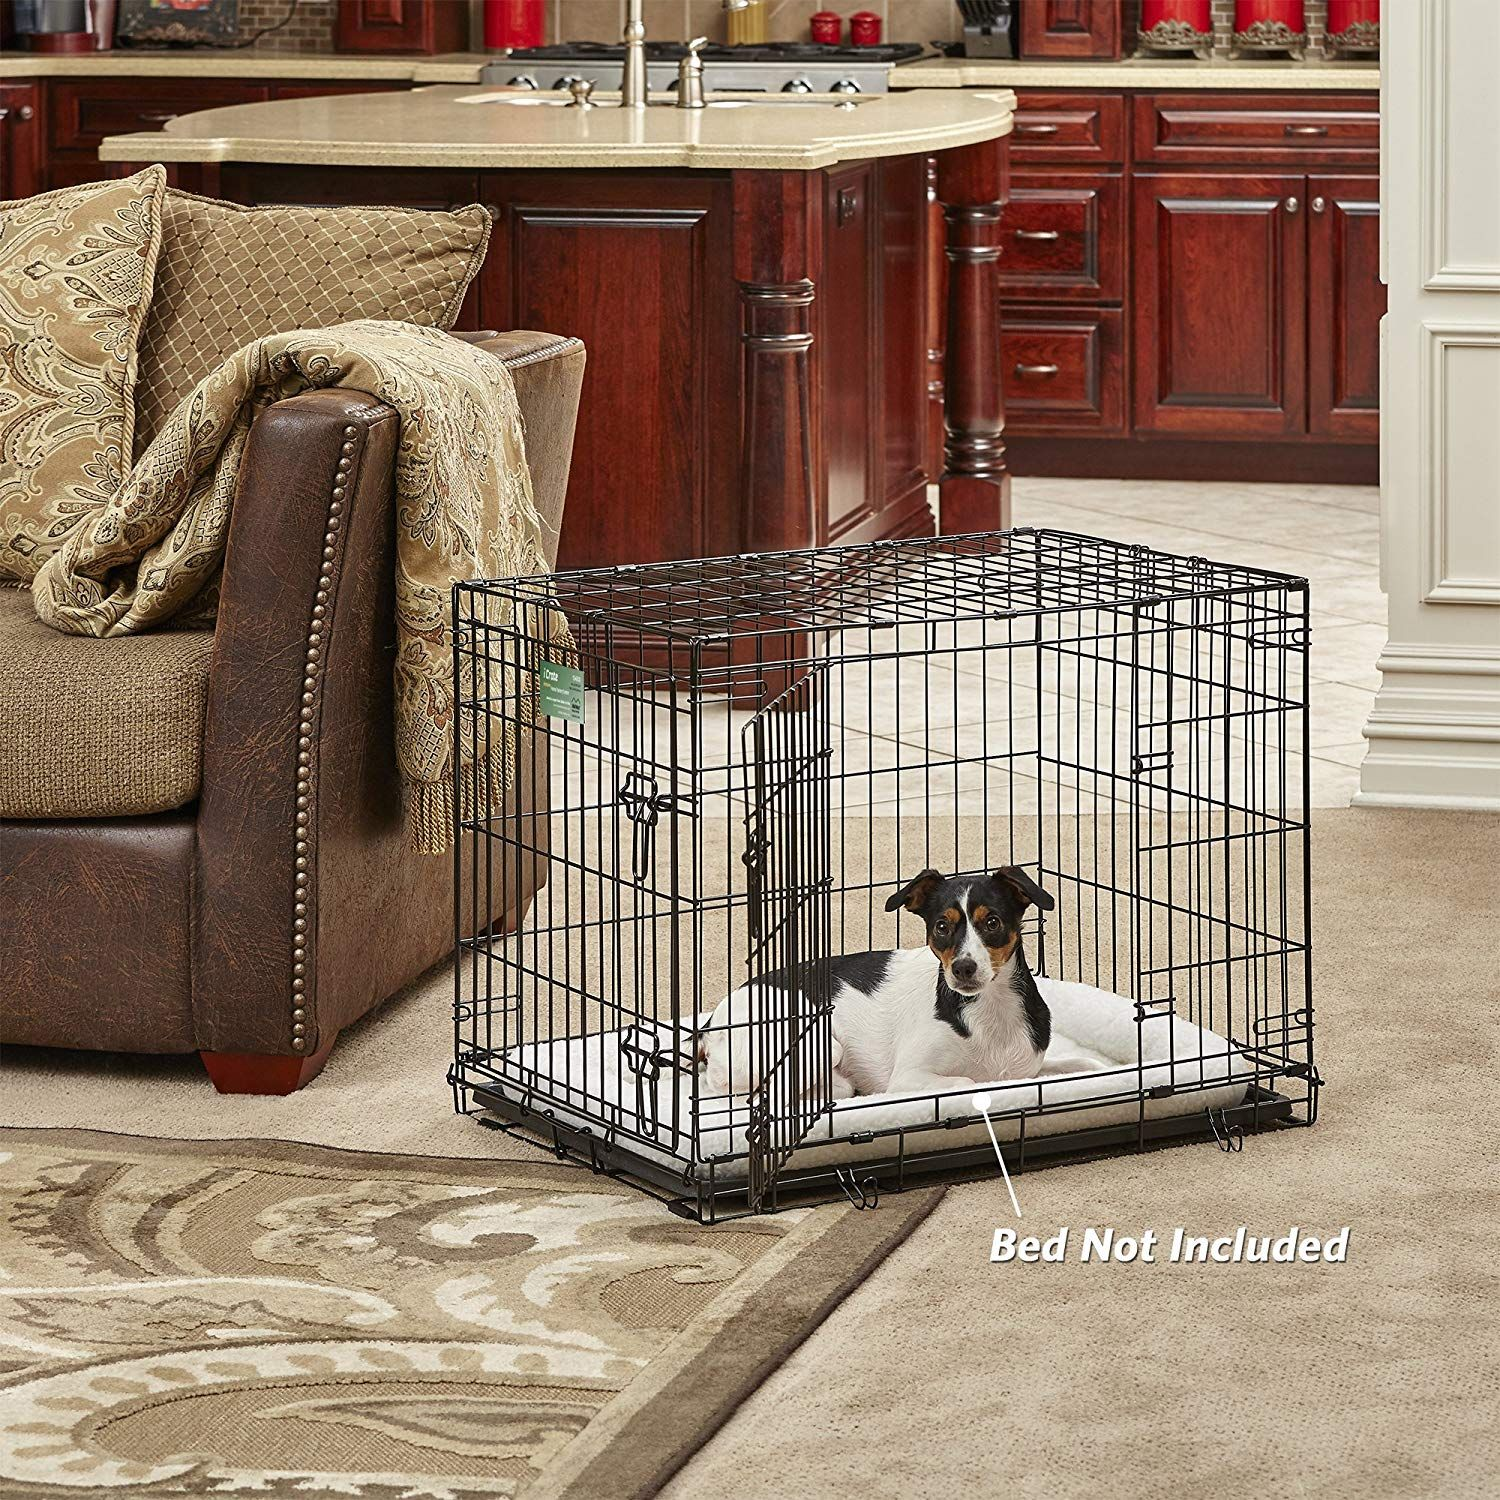 Midwest Homes For Pets Dog Crate Icrate Single Door Double Door Folding Metal Dog Crates Fully Equipped Dog Playpen Large Dog Crate Heavy Duty Dog Crate